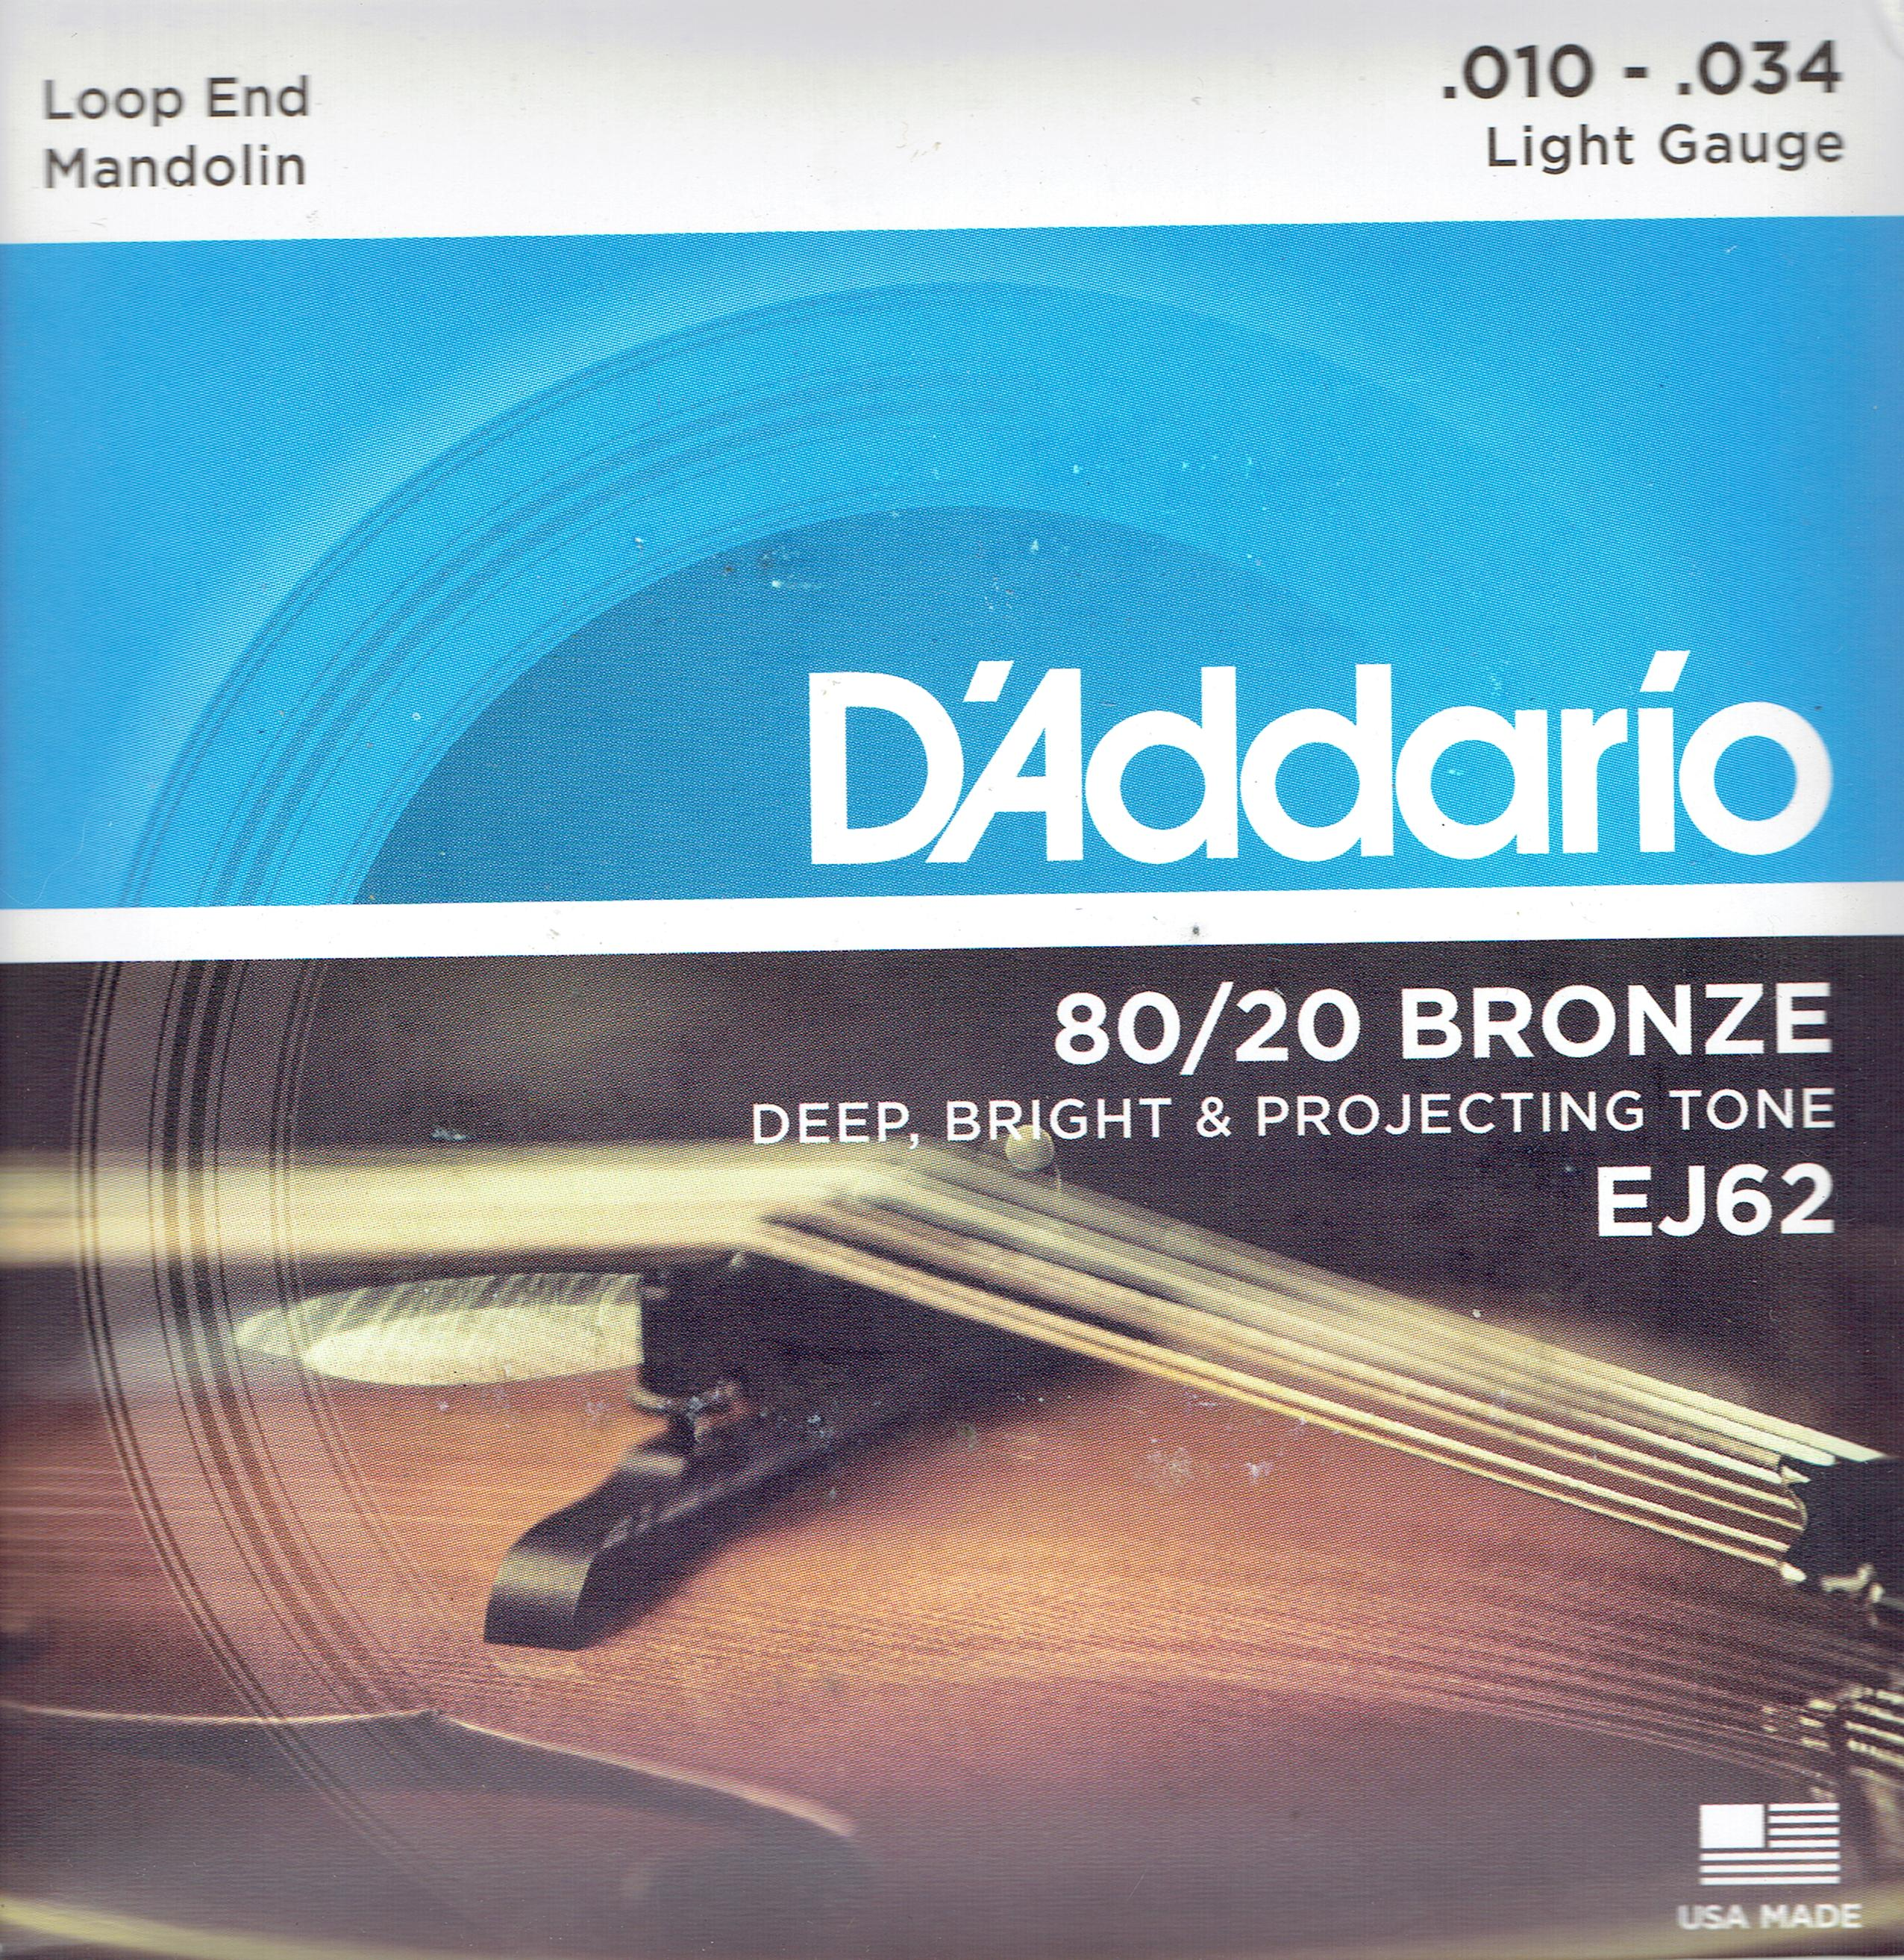 D'Addario mandolin 80/20 bronze acoustic strings 10-34 EJ52